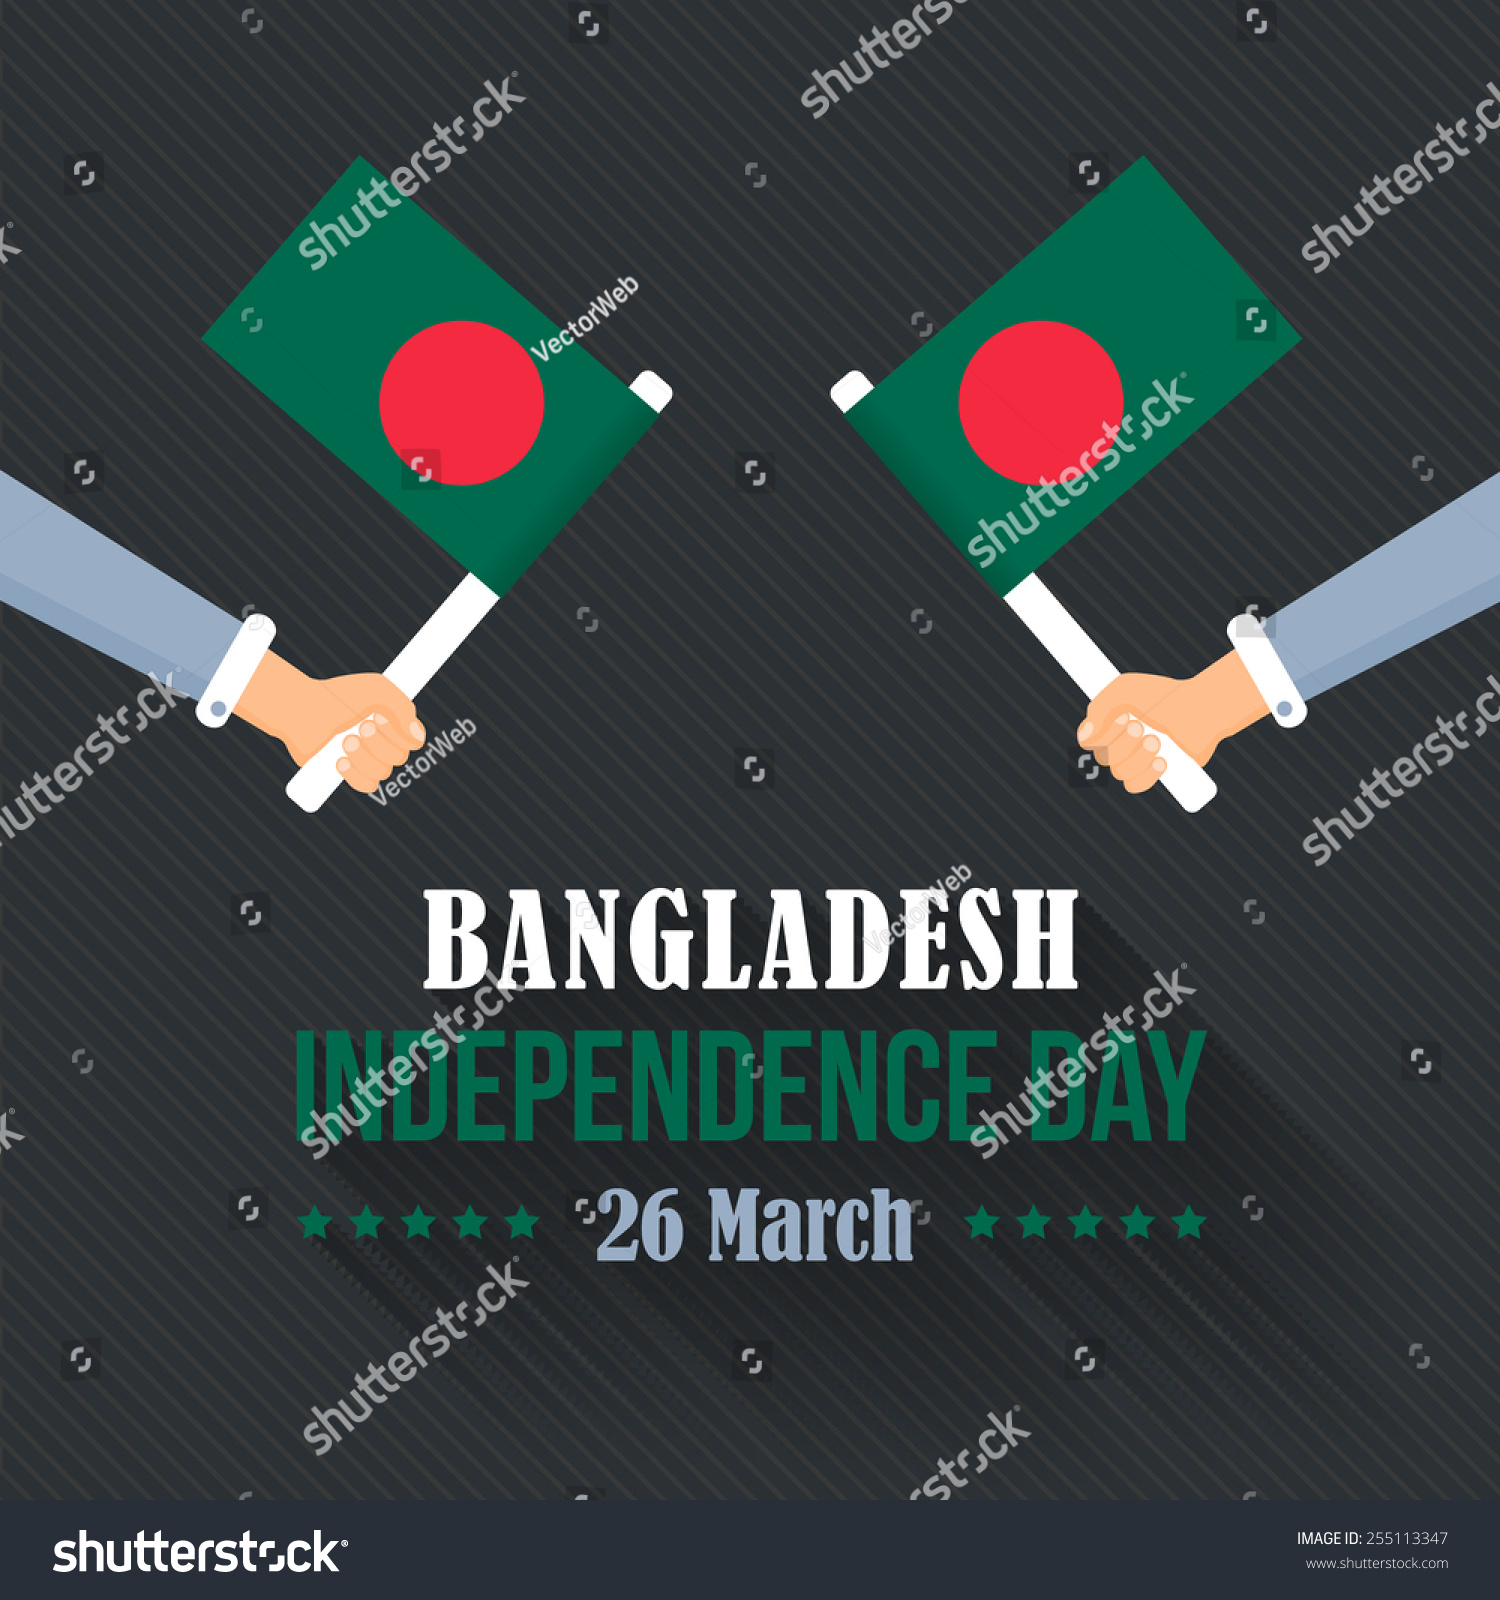 bangladesh independence day 26 march celebration stock vector 255113347 shutterstock. Black Bedroom Furniture Sets. Home Design Ideas